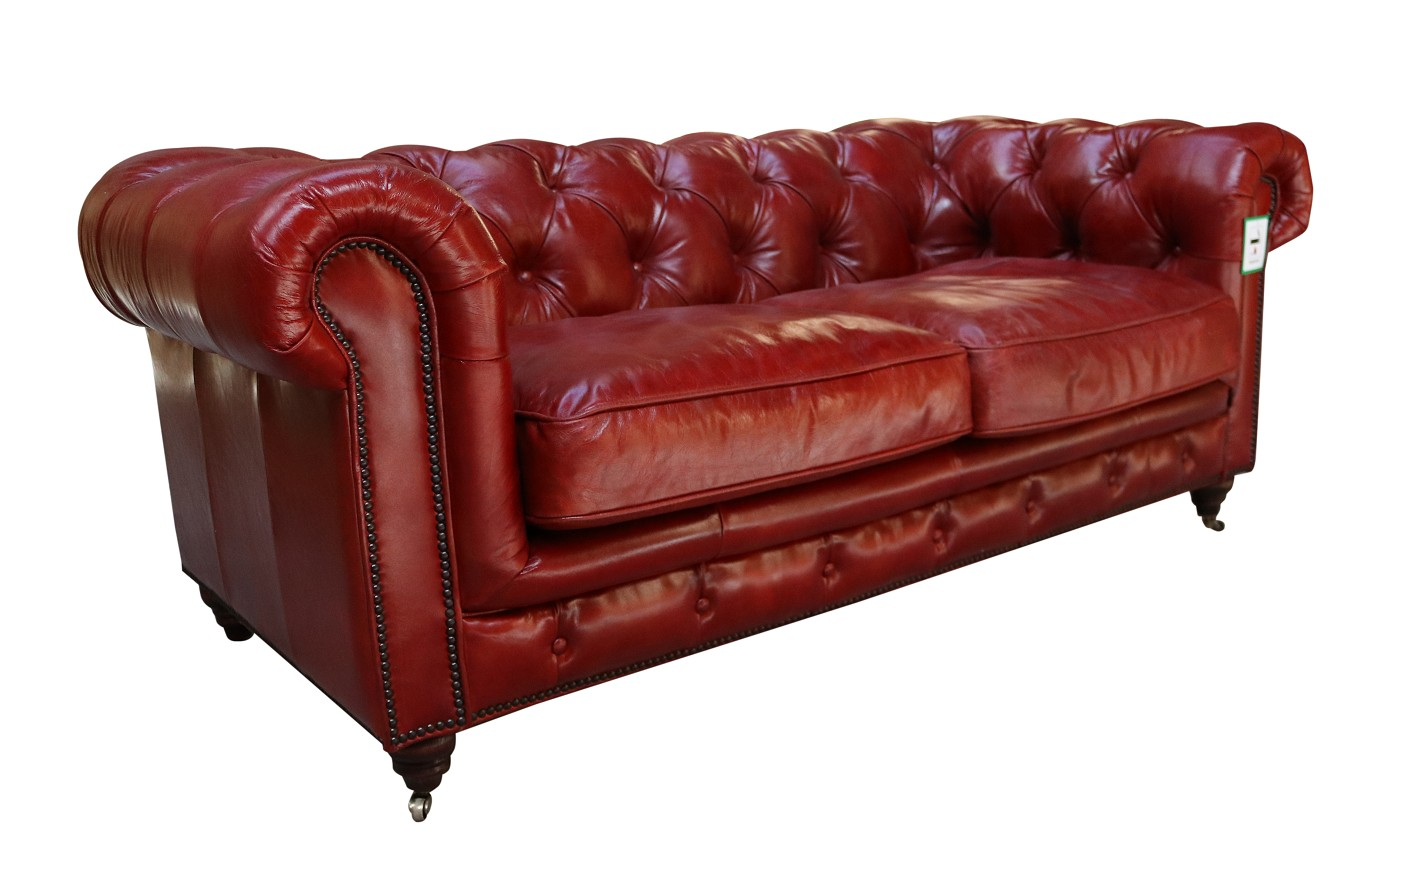 Picture of: Vintage Distressed Rouge Red Leather Chesterfield 2 Seater Sofa Vintage Furniture By Designer Sofas For You